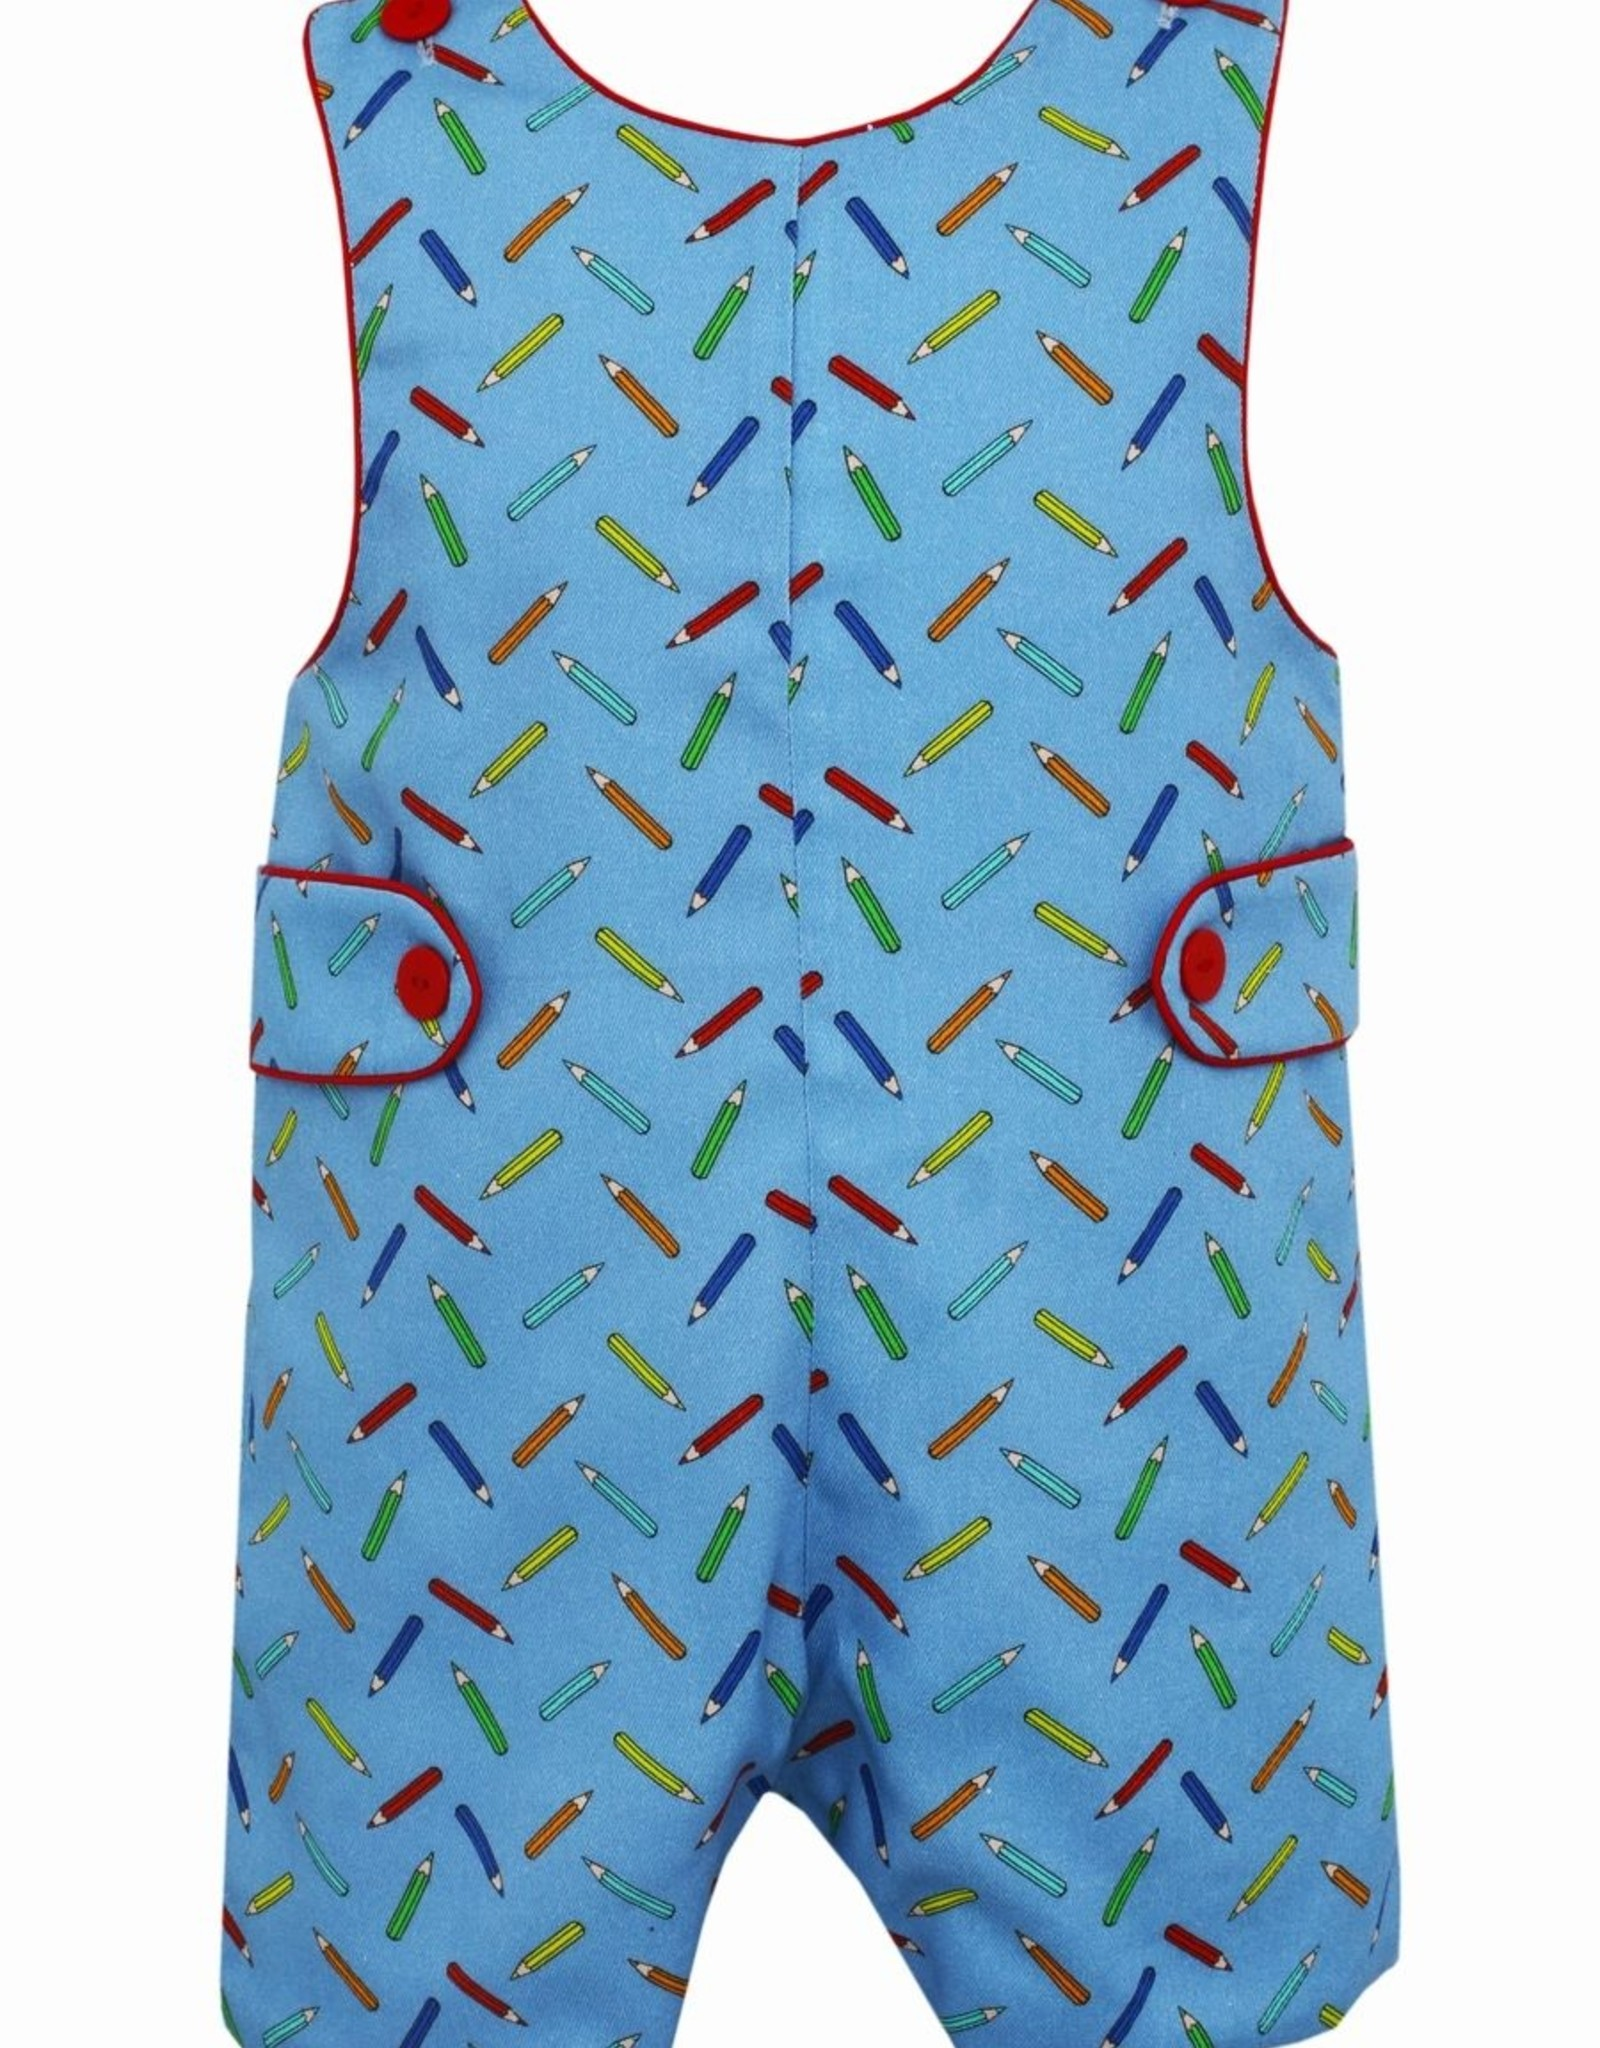 Claire and Charlie Color Pencil Print Shortall